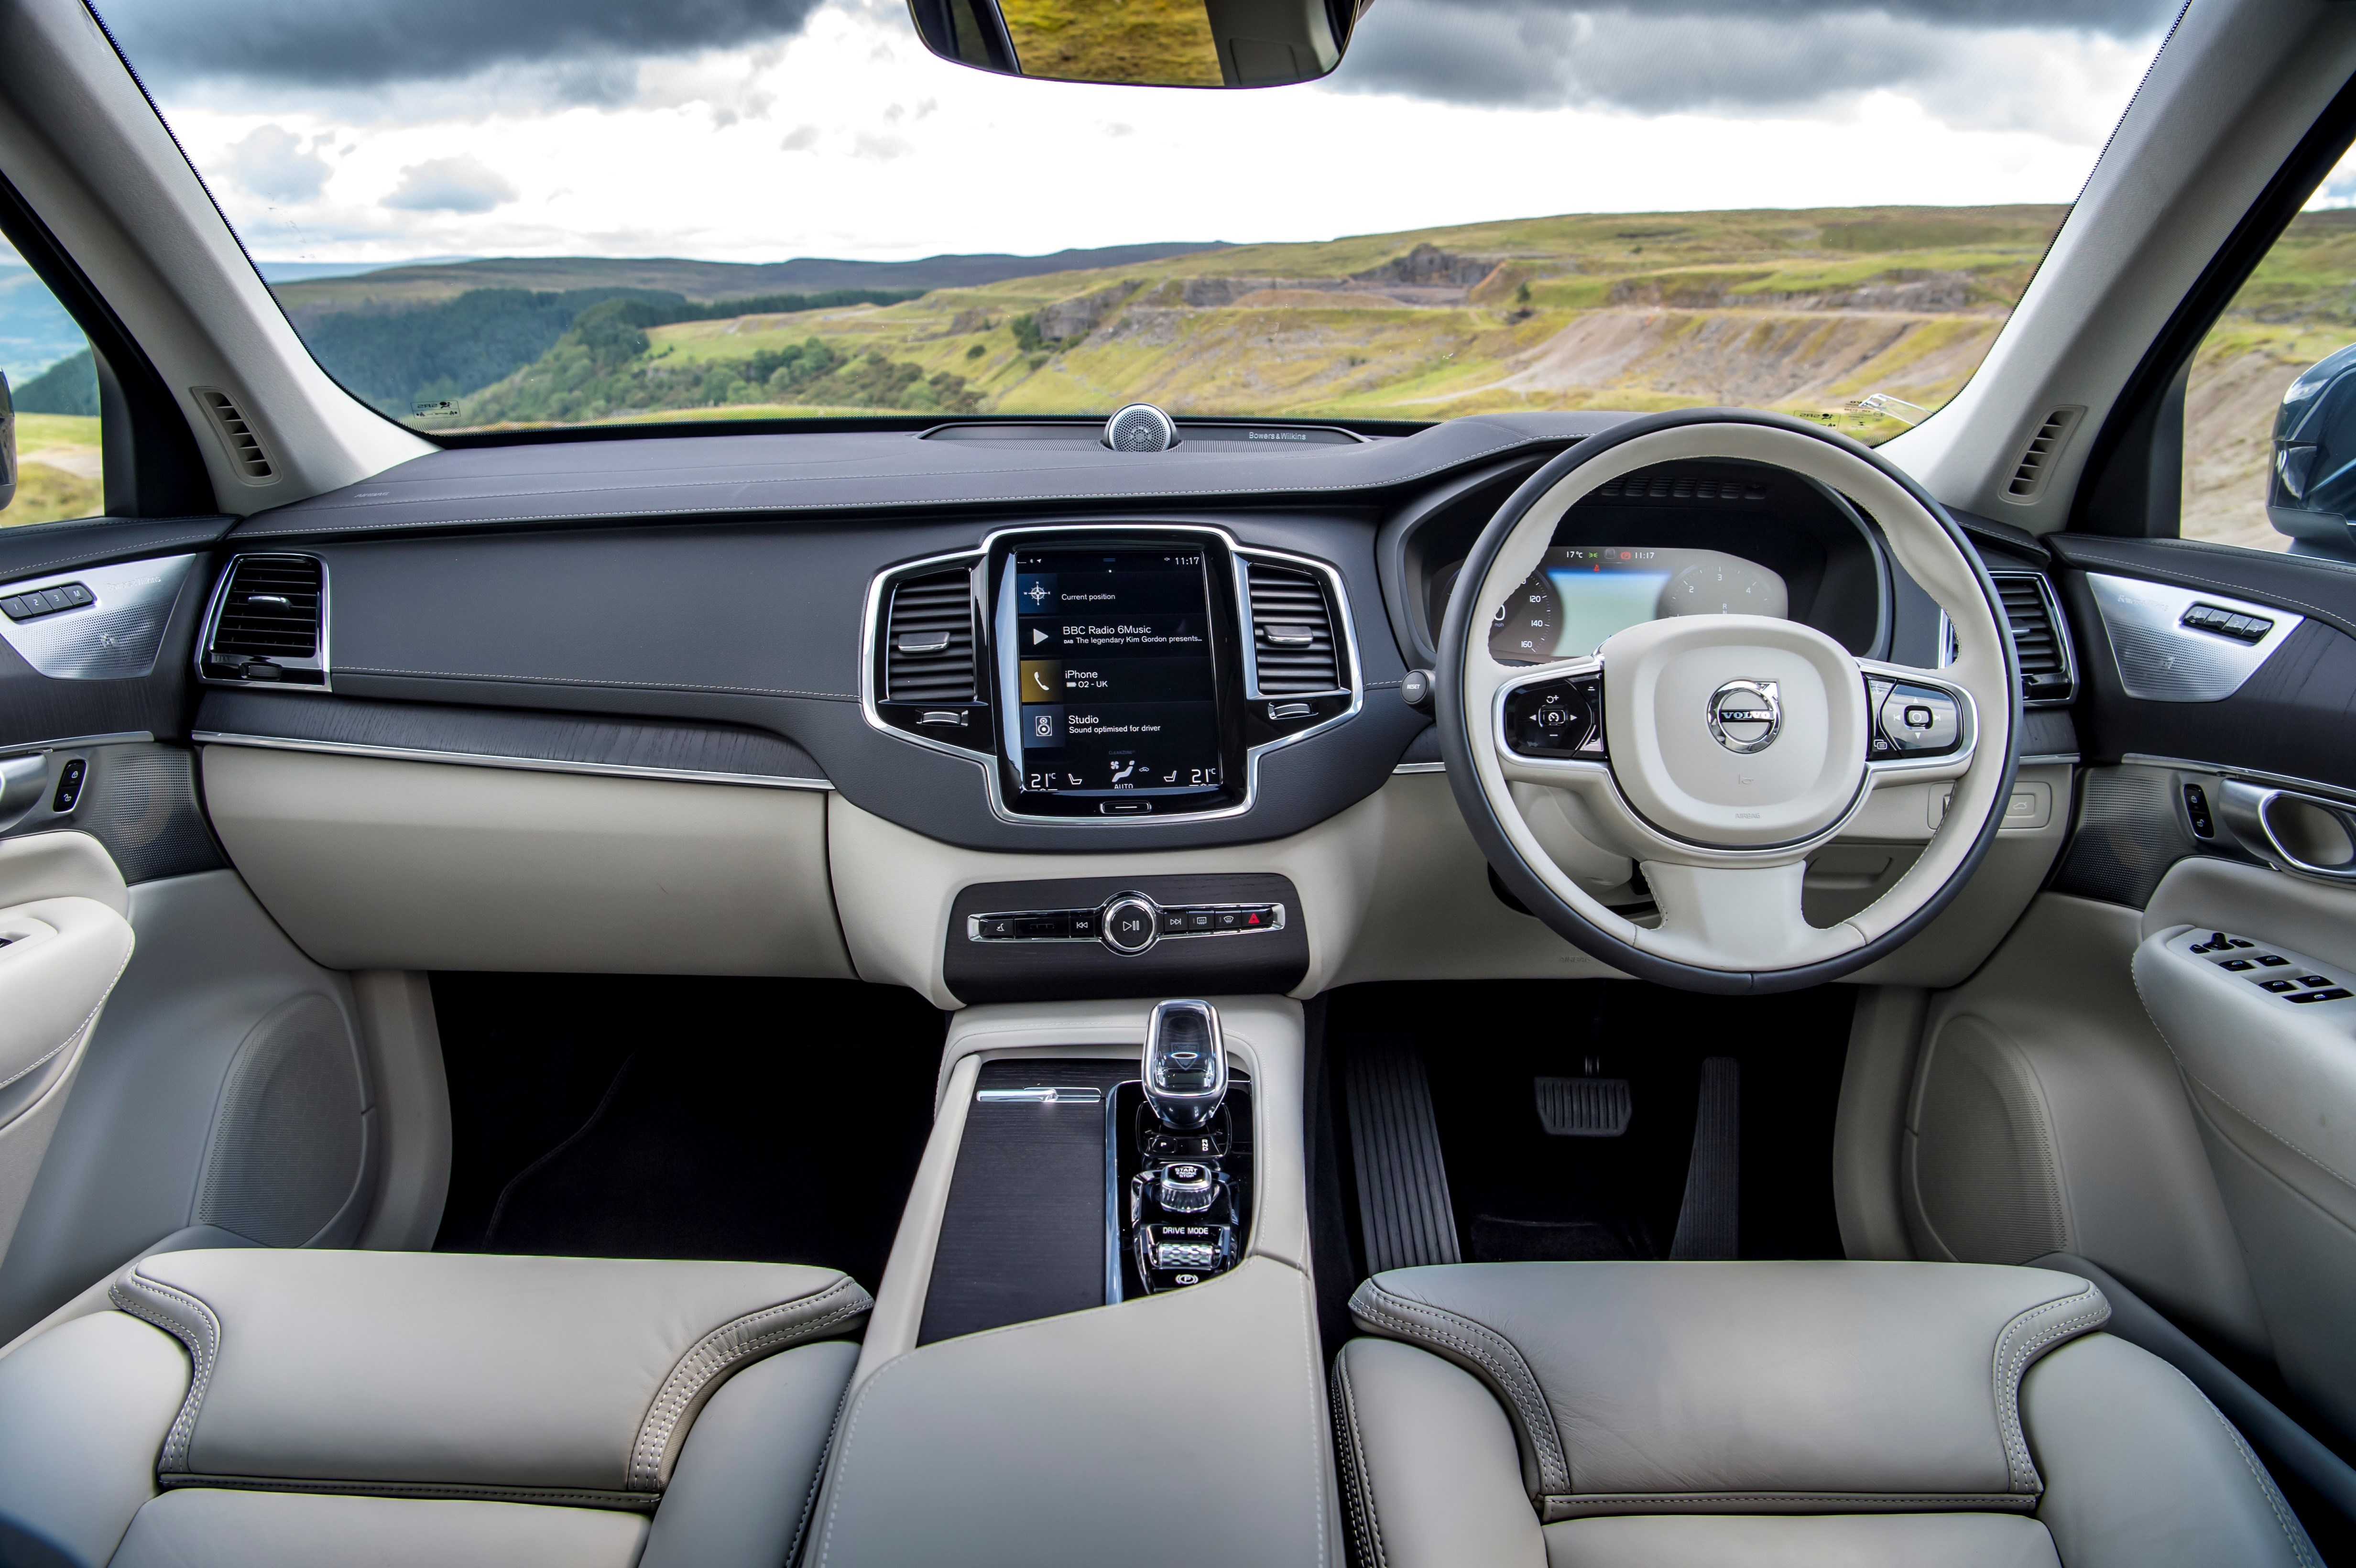 The interior of the XC90 is finished to a high specification